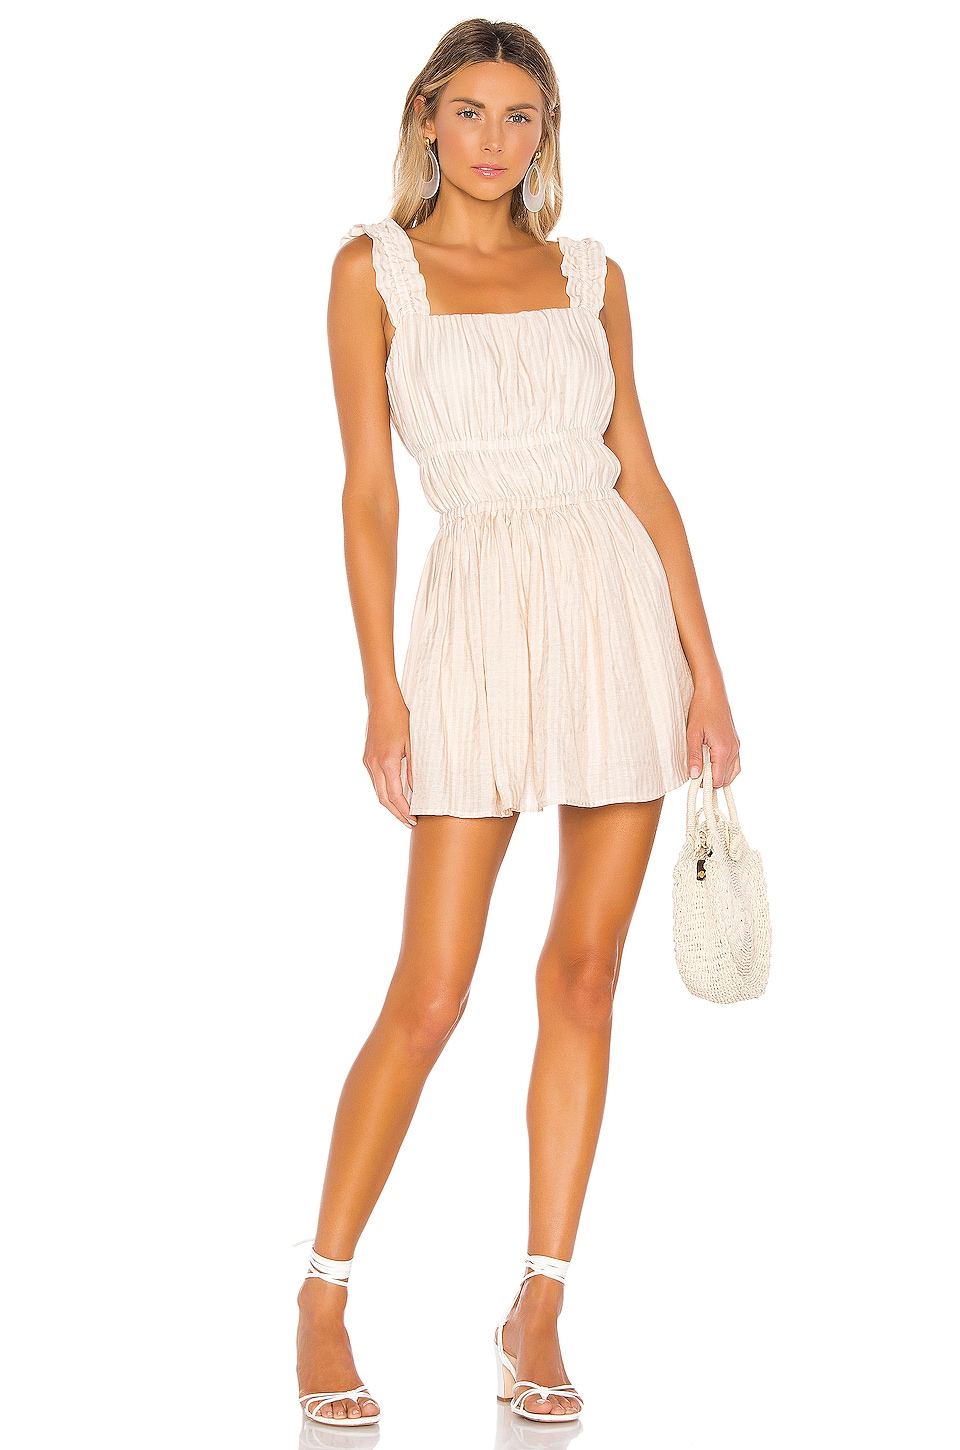 House of Harlow 1960 x REVOLVE Estrella Romper in Ivory